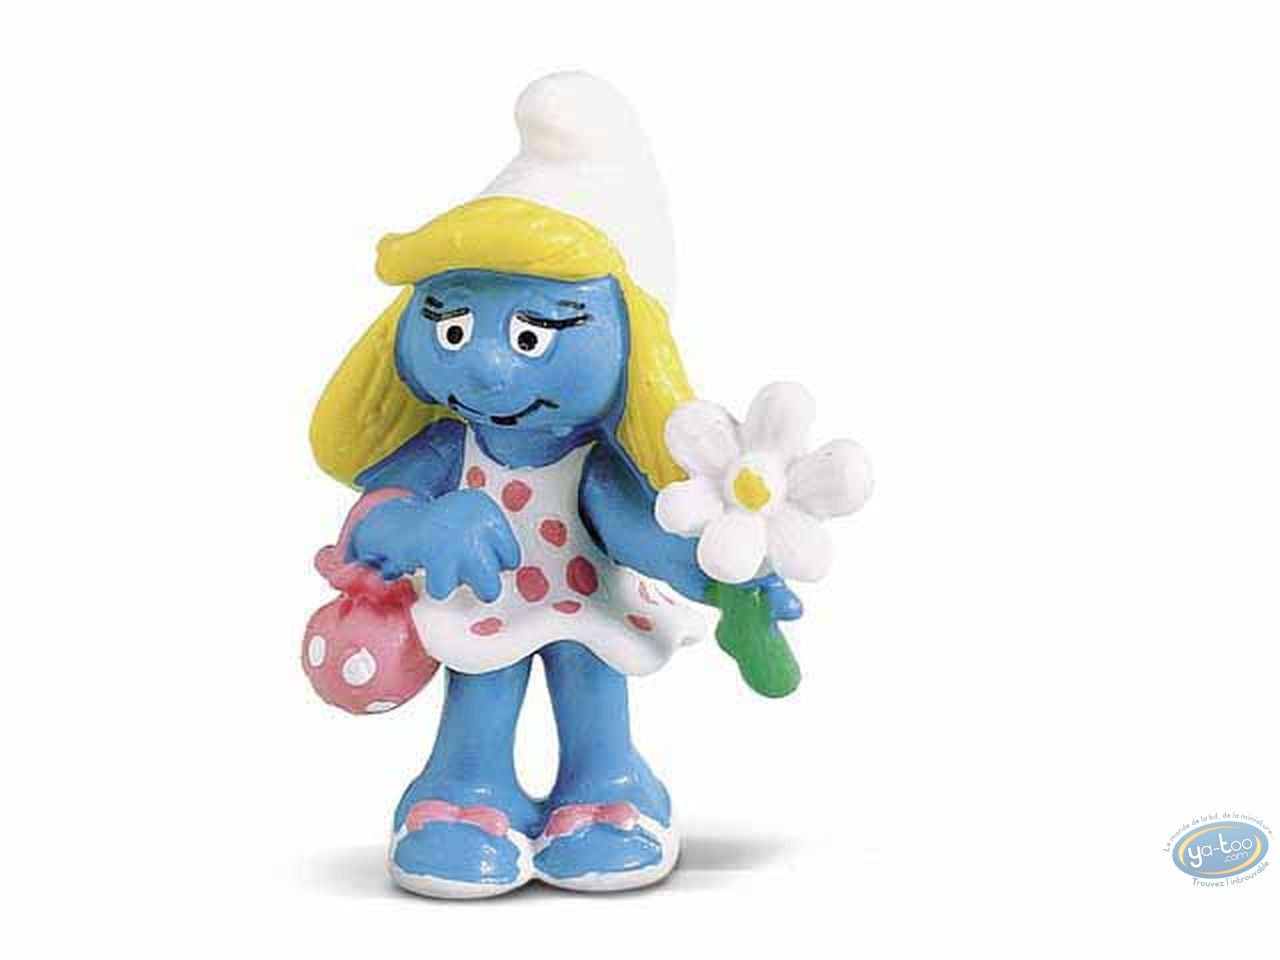 Plastic Figurine, Smurfs (The) : Smurfette with flower